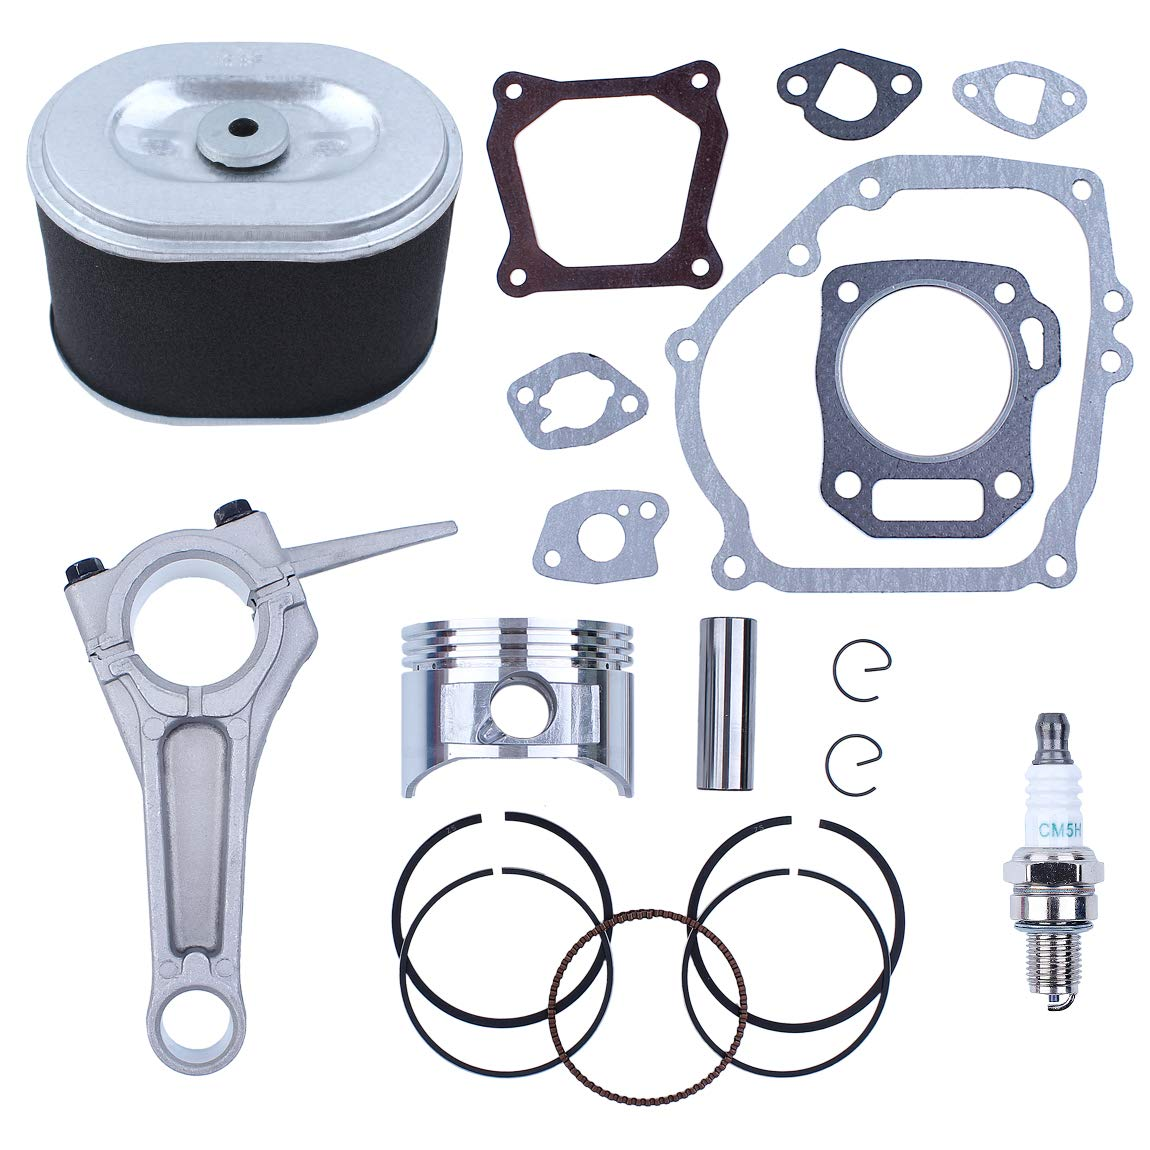 68mm Piston Rings Connecting Rod Air Filter Kit Fit Honda GX160 5.5 hp Gasoline Motors Engines Generator Water Pump